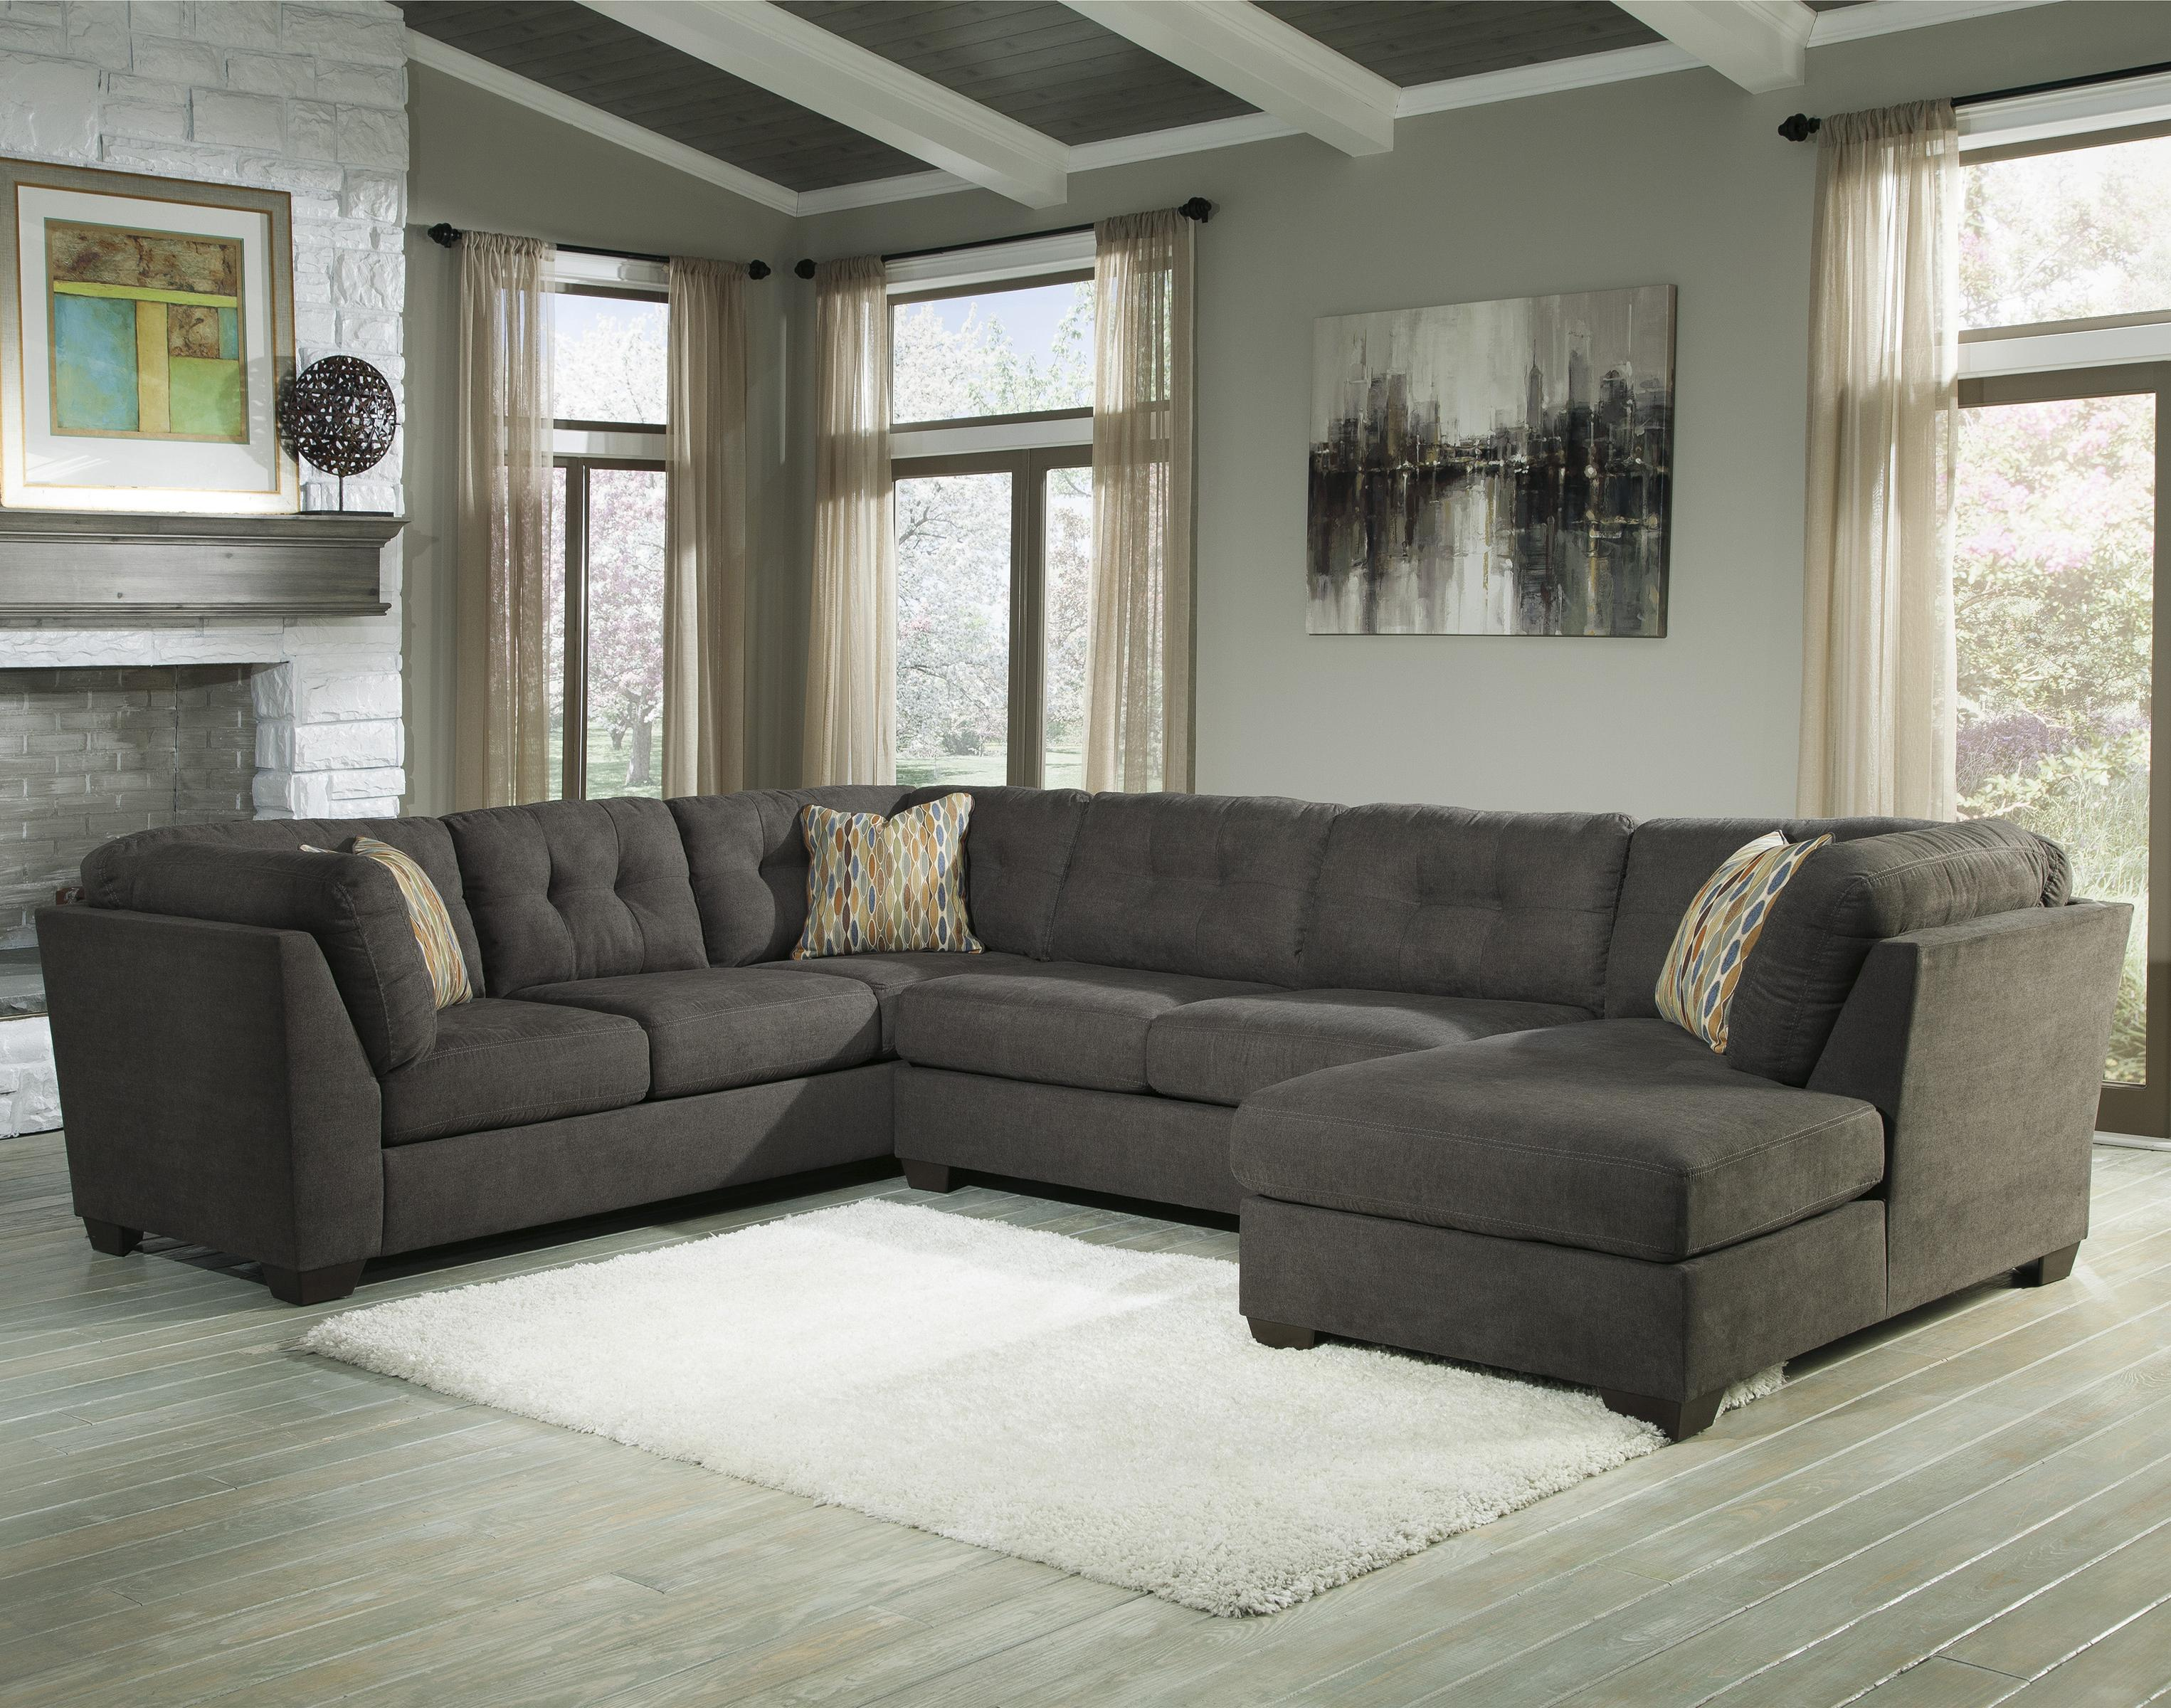 3-Piece Modular Sectional w/ Armless Sleeper u0026 Right Chaise : sectional chaise sleeper - Sectionals, Sofas & Couches